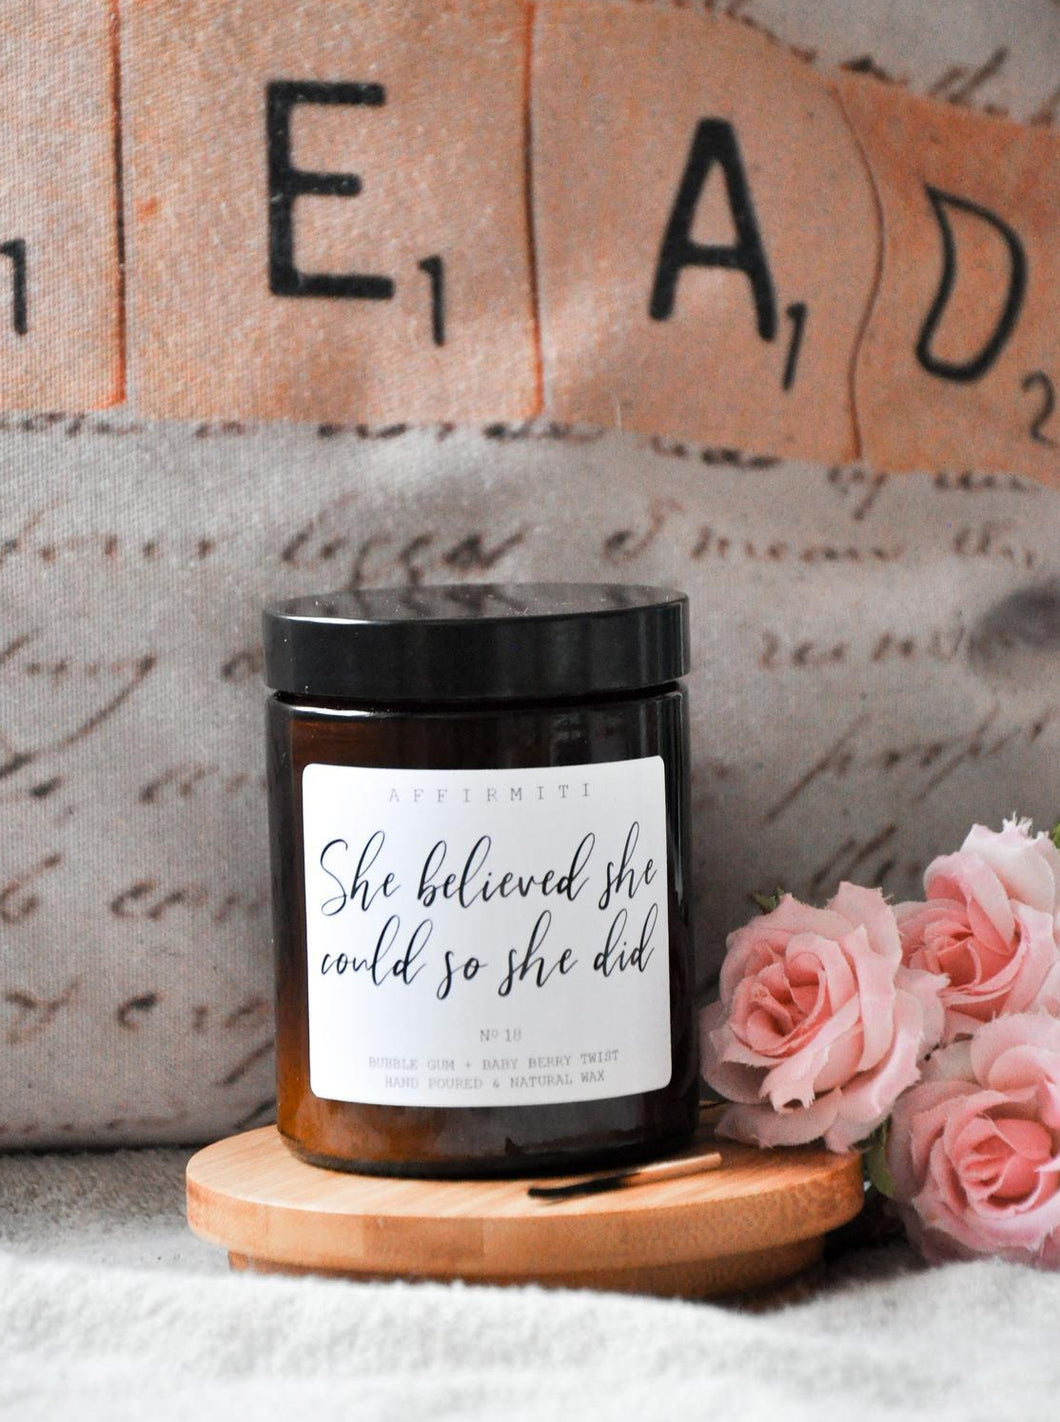 She Believed She Could So She Did Premium Wood Wick Candle